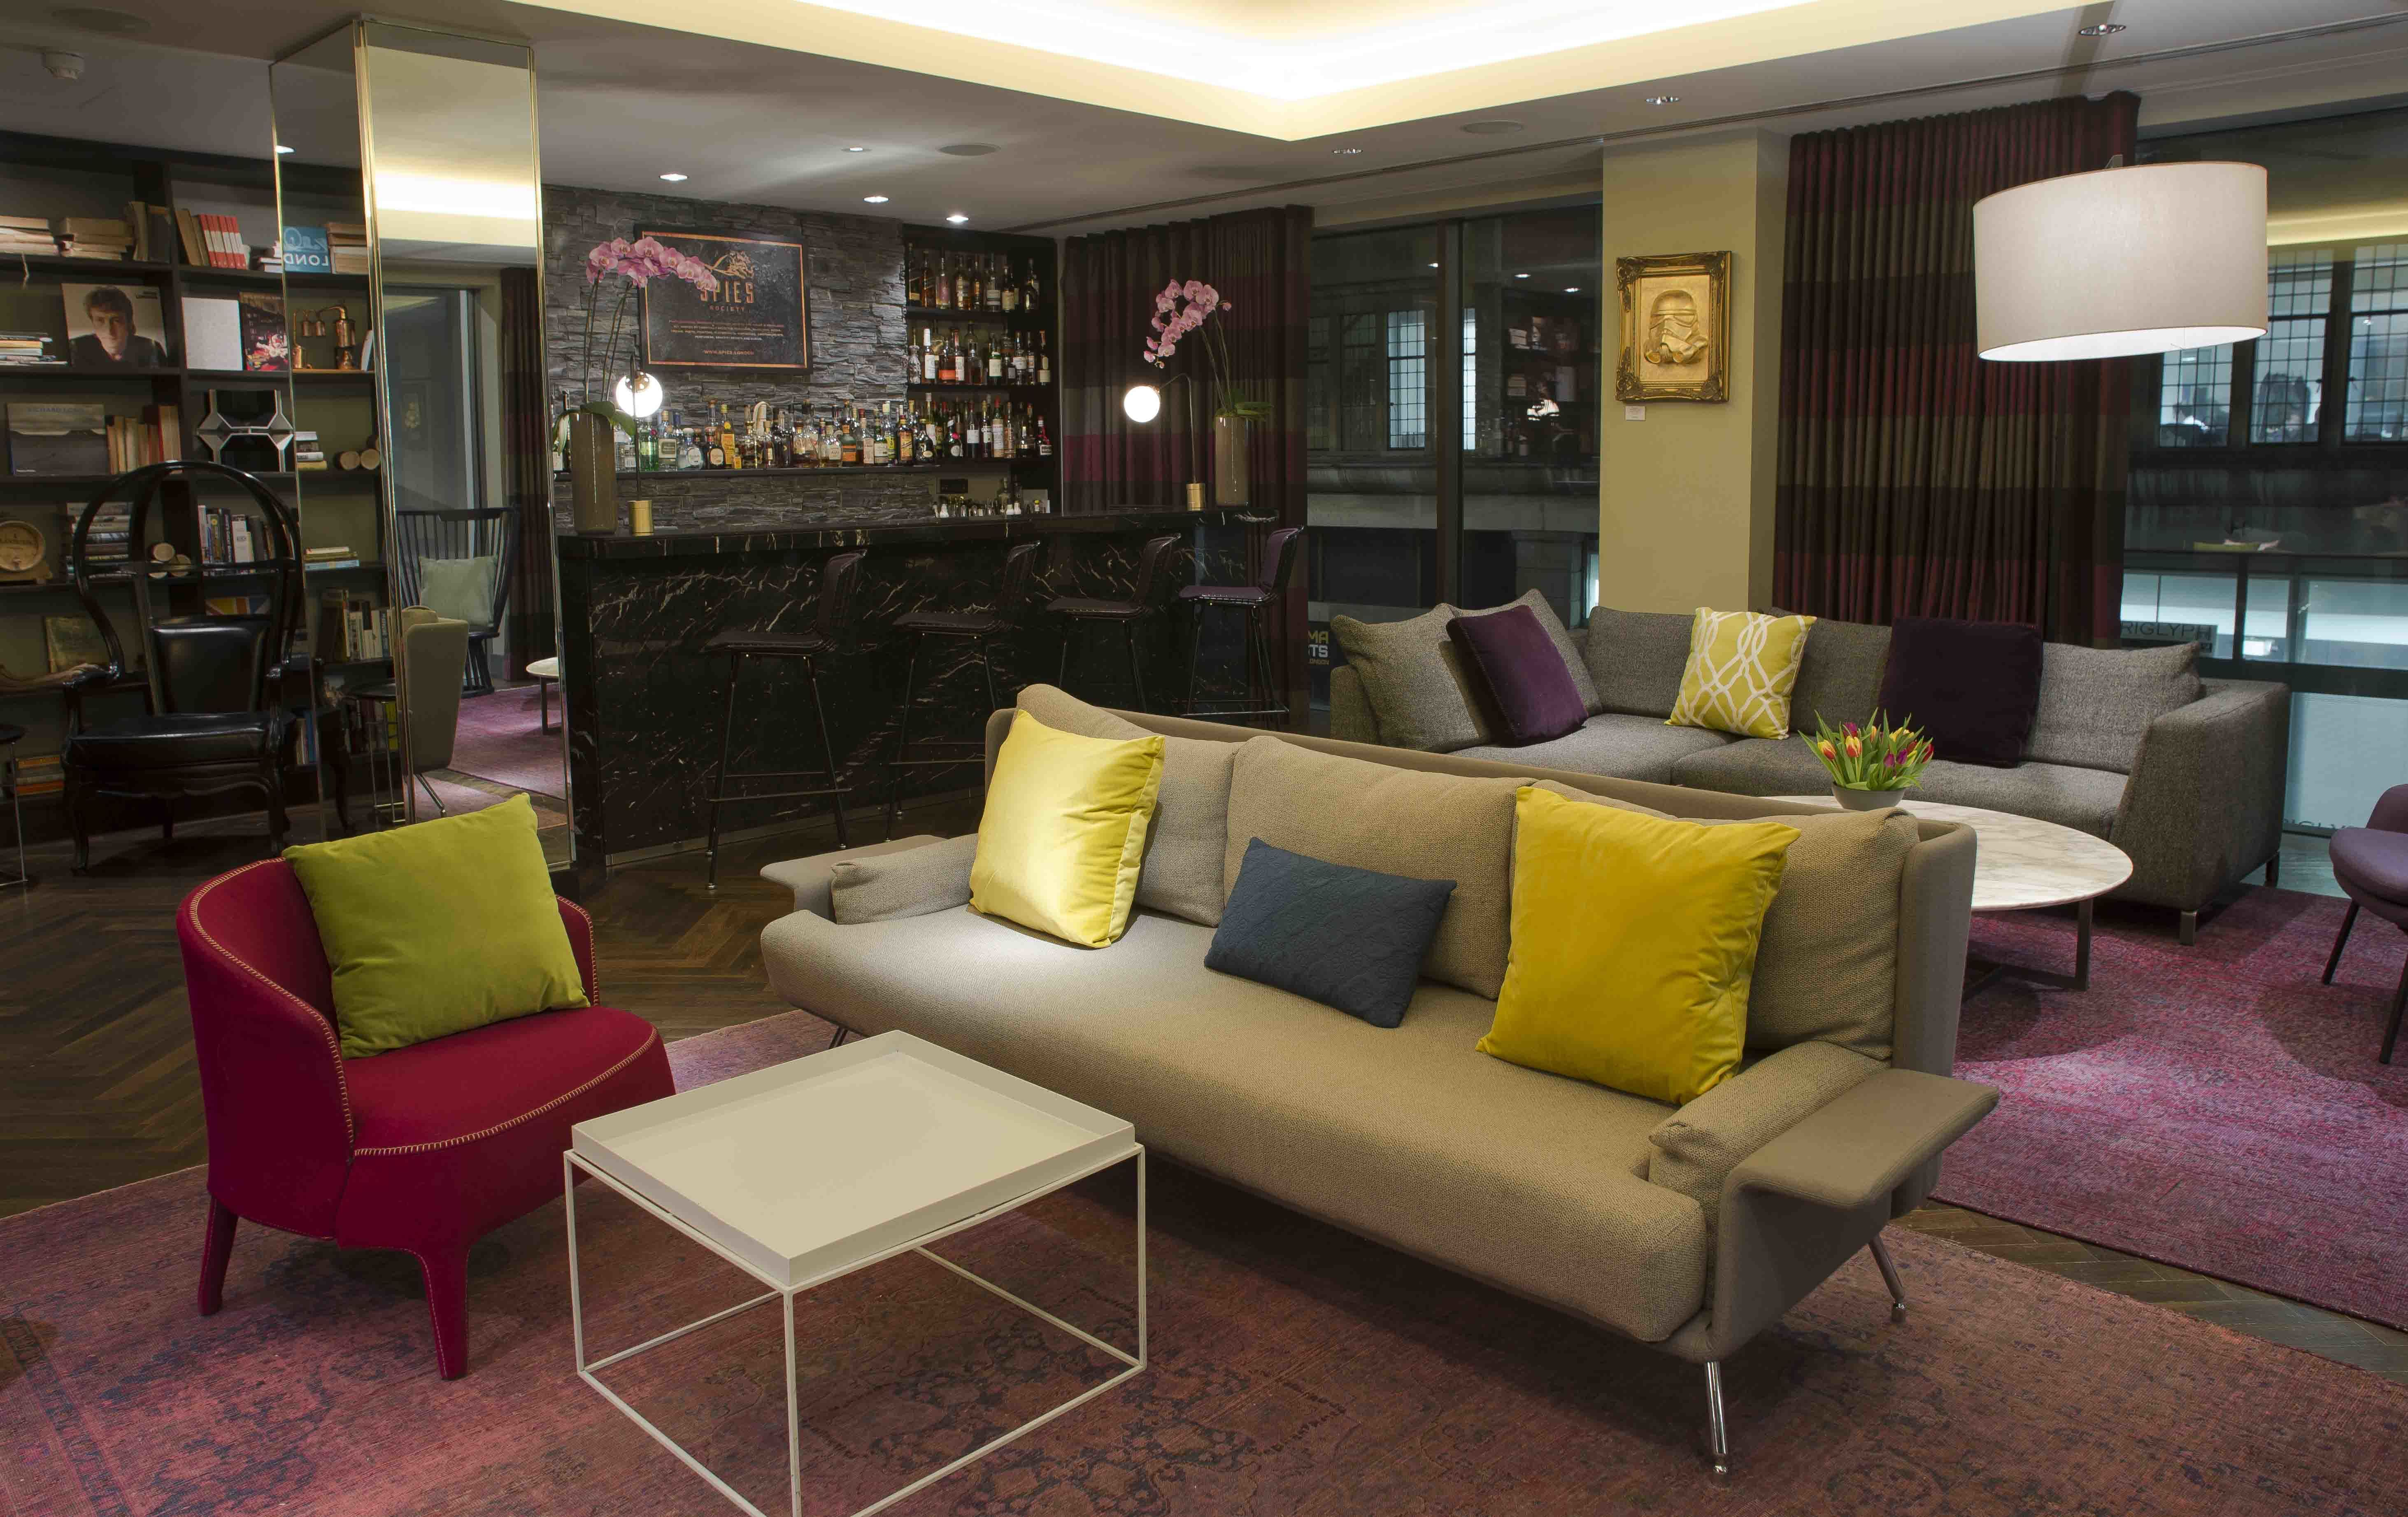 Couch To 5k Exeter Hire South Place Hotel Le Chiffre Venuescanner